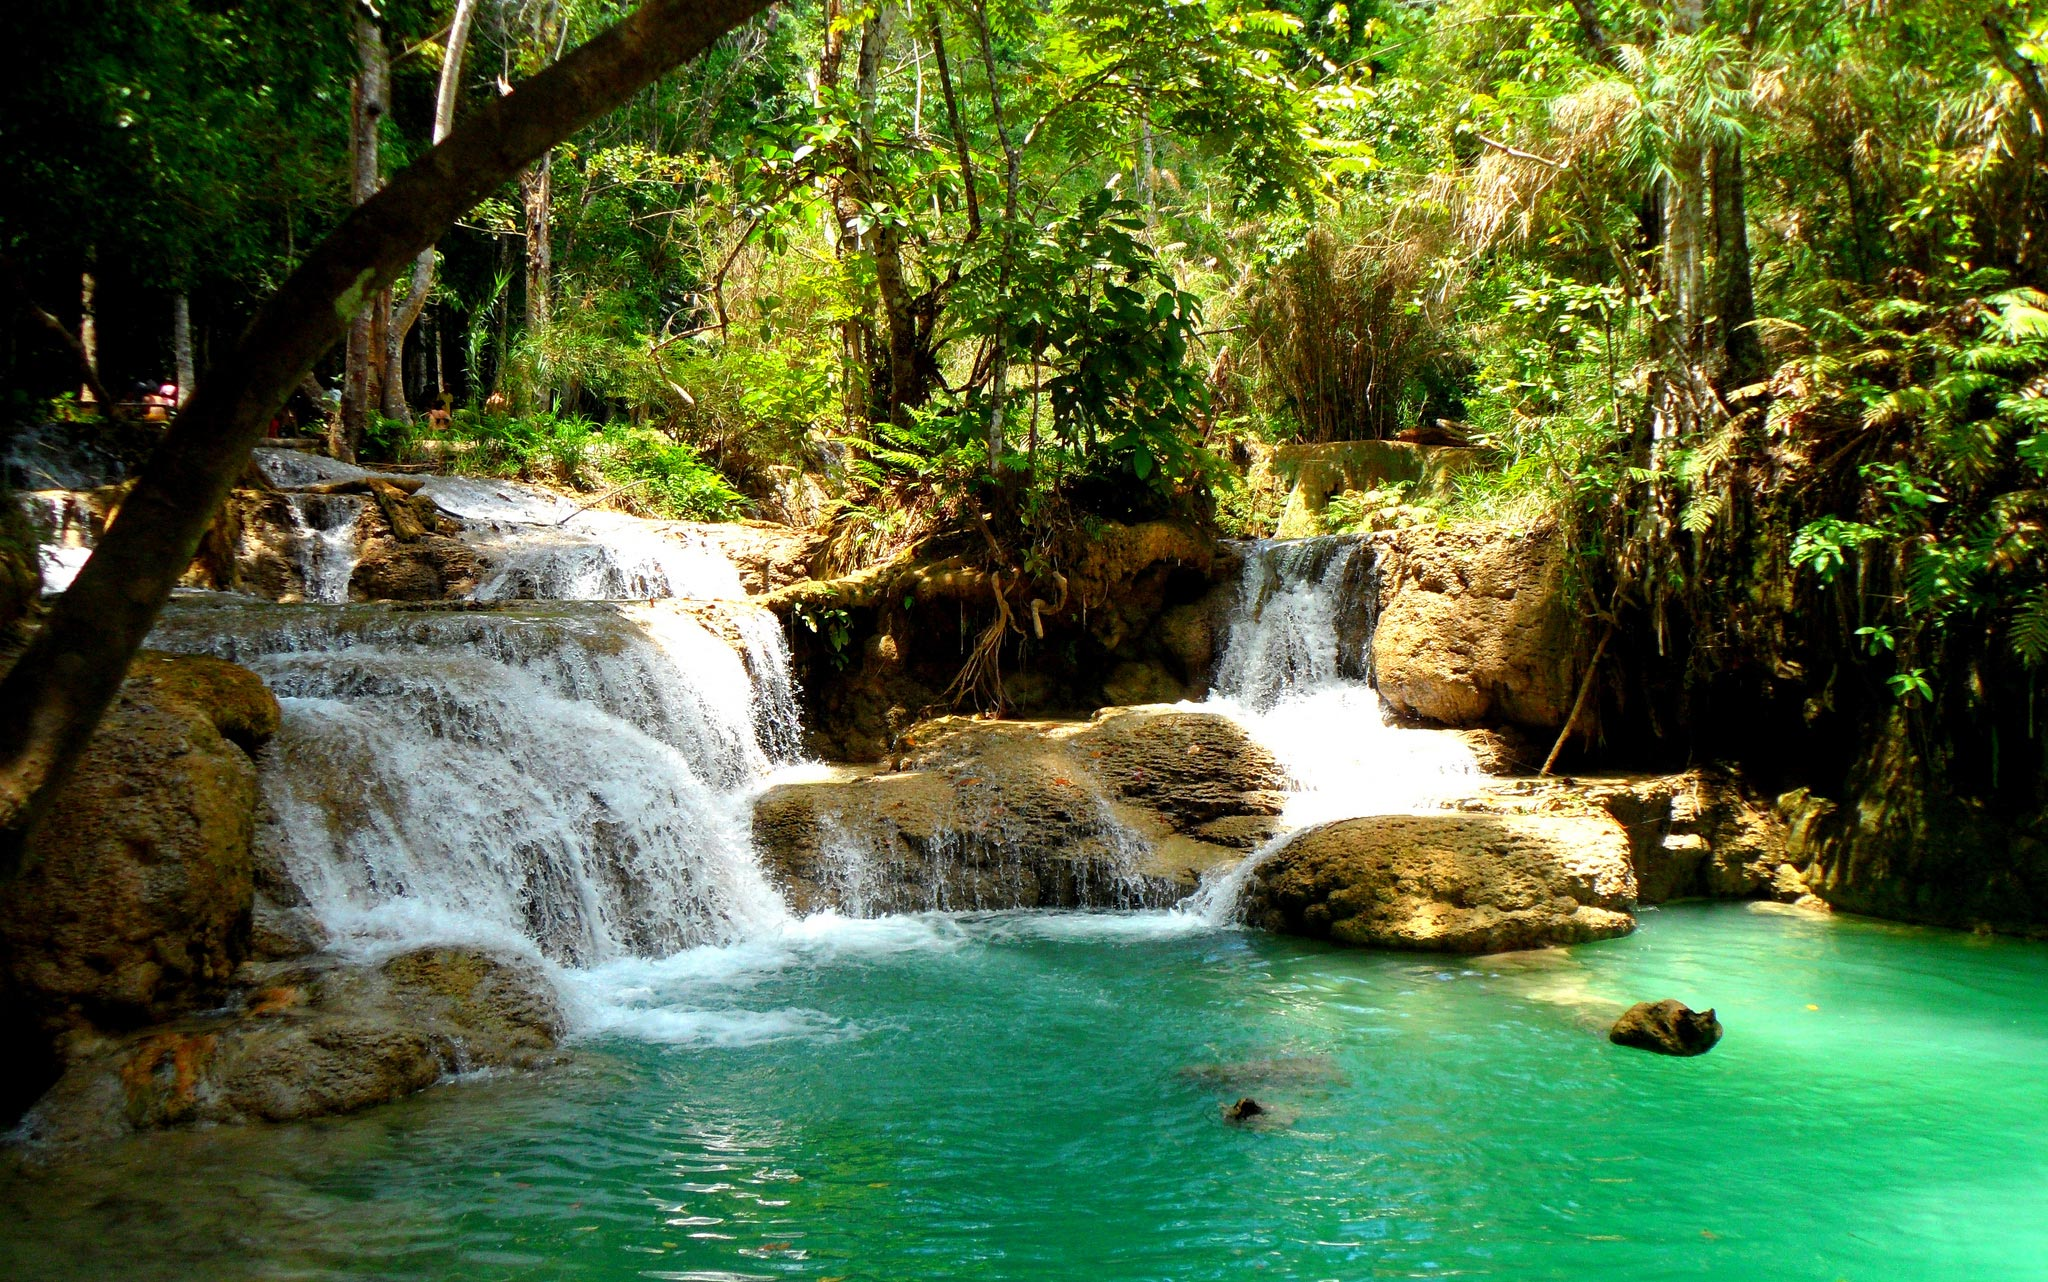 Top 10 des plus belles piscines naturelles au monde for Piscine naturelle cascade